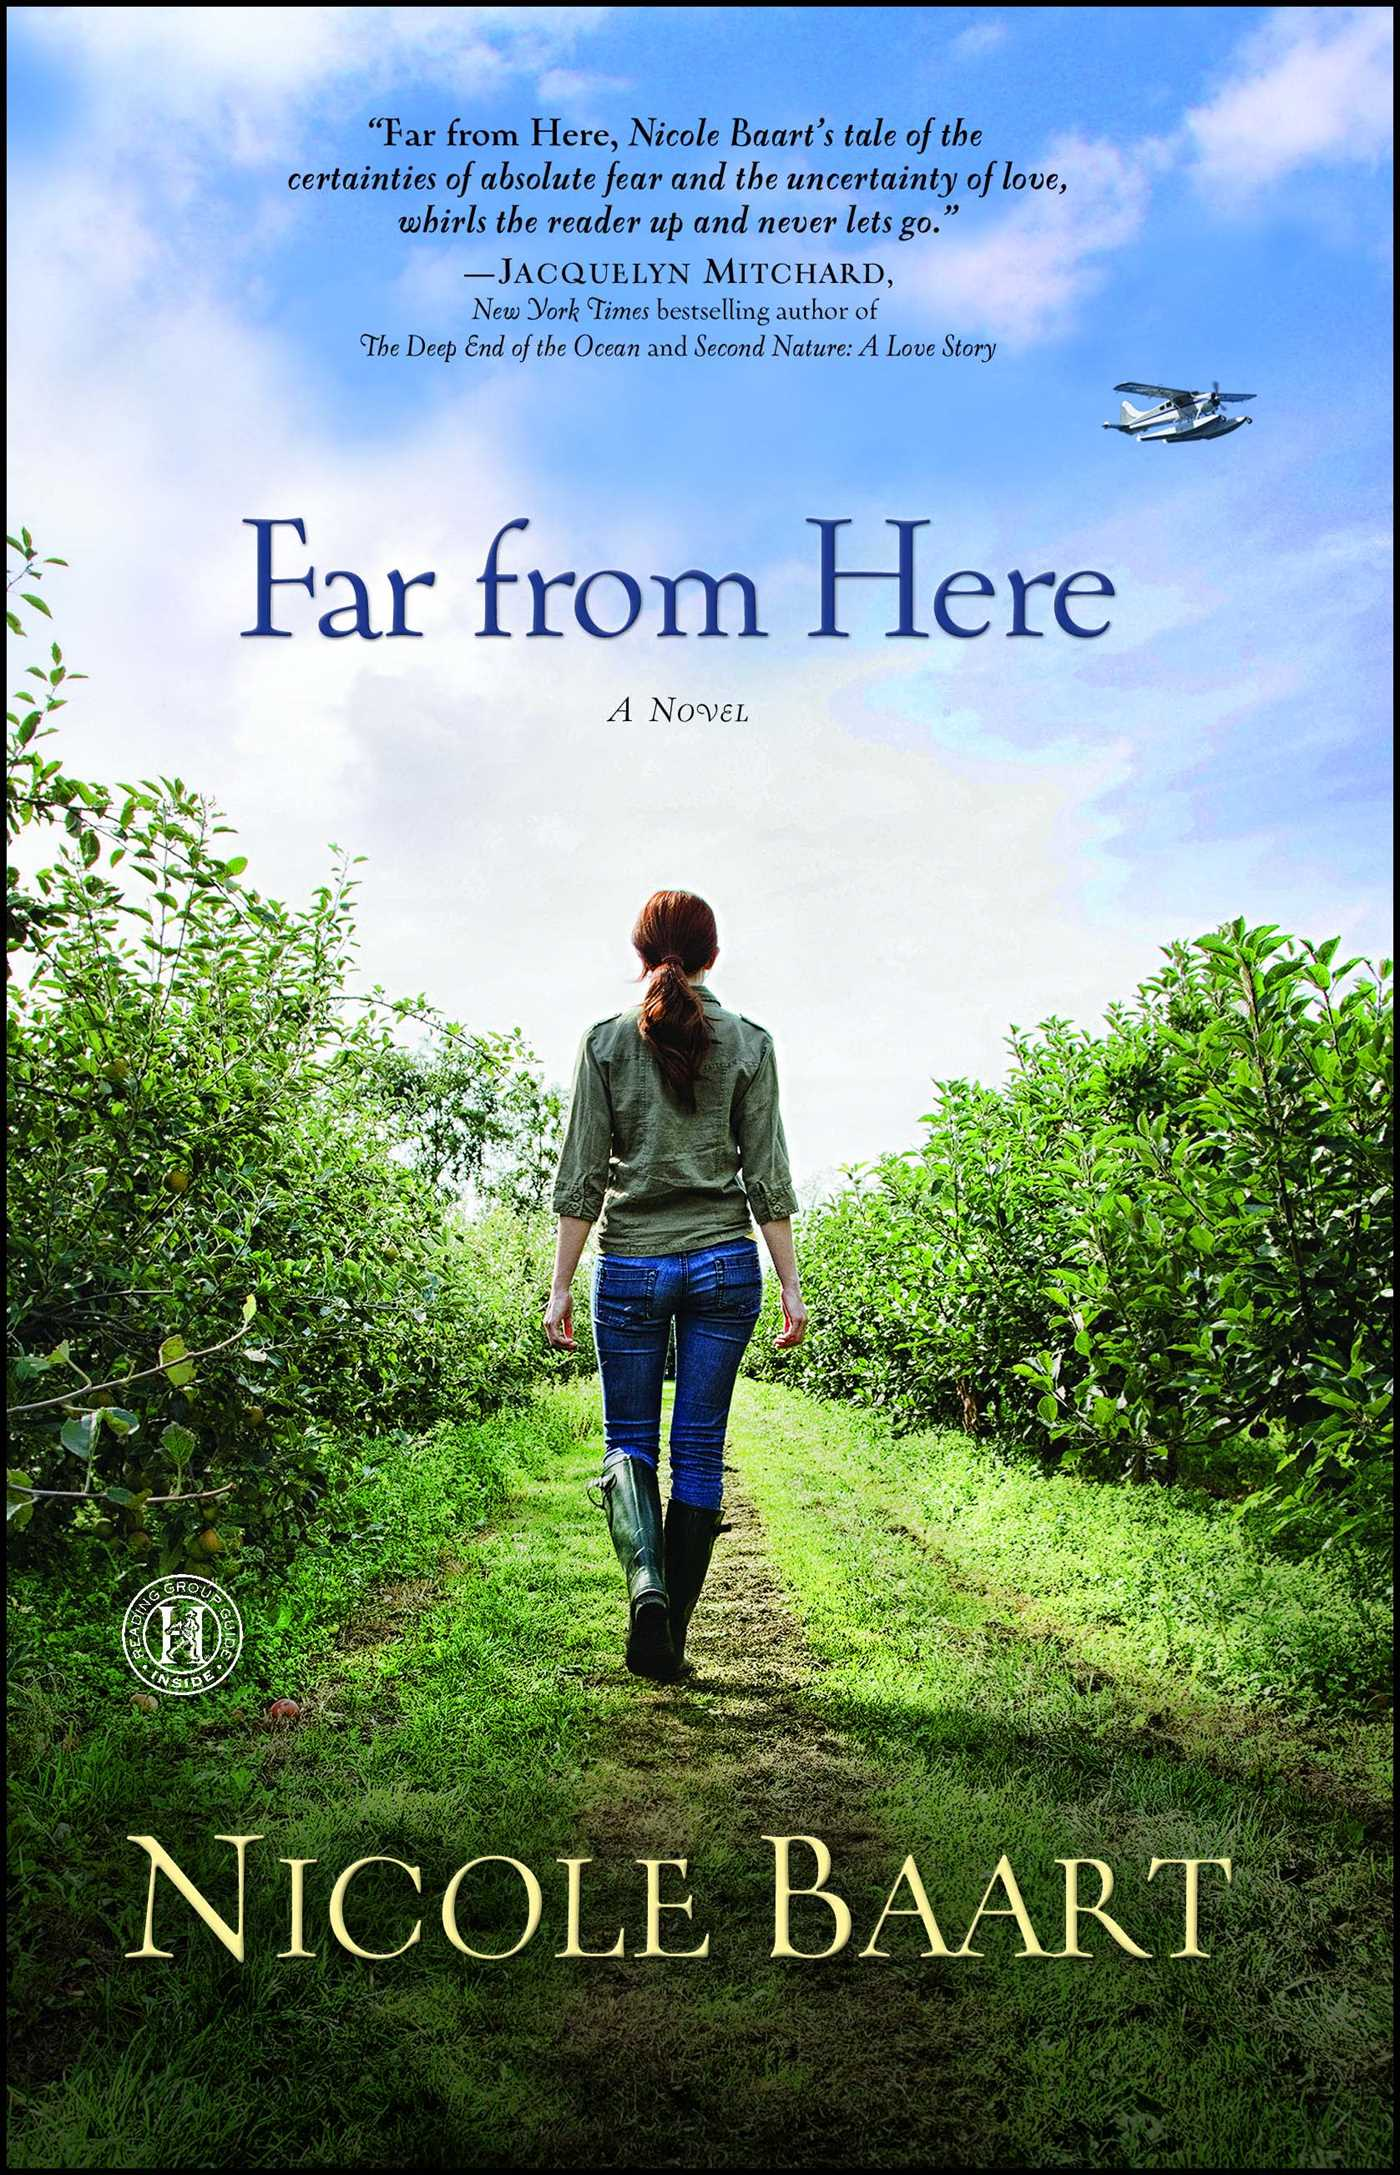 Far from here 9781439197332 hr